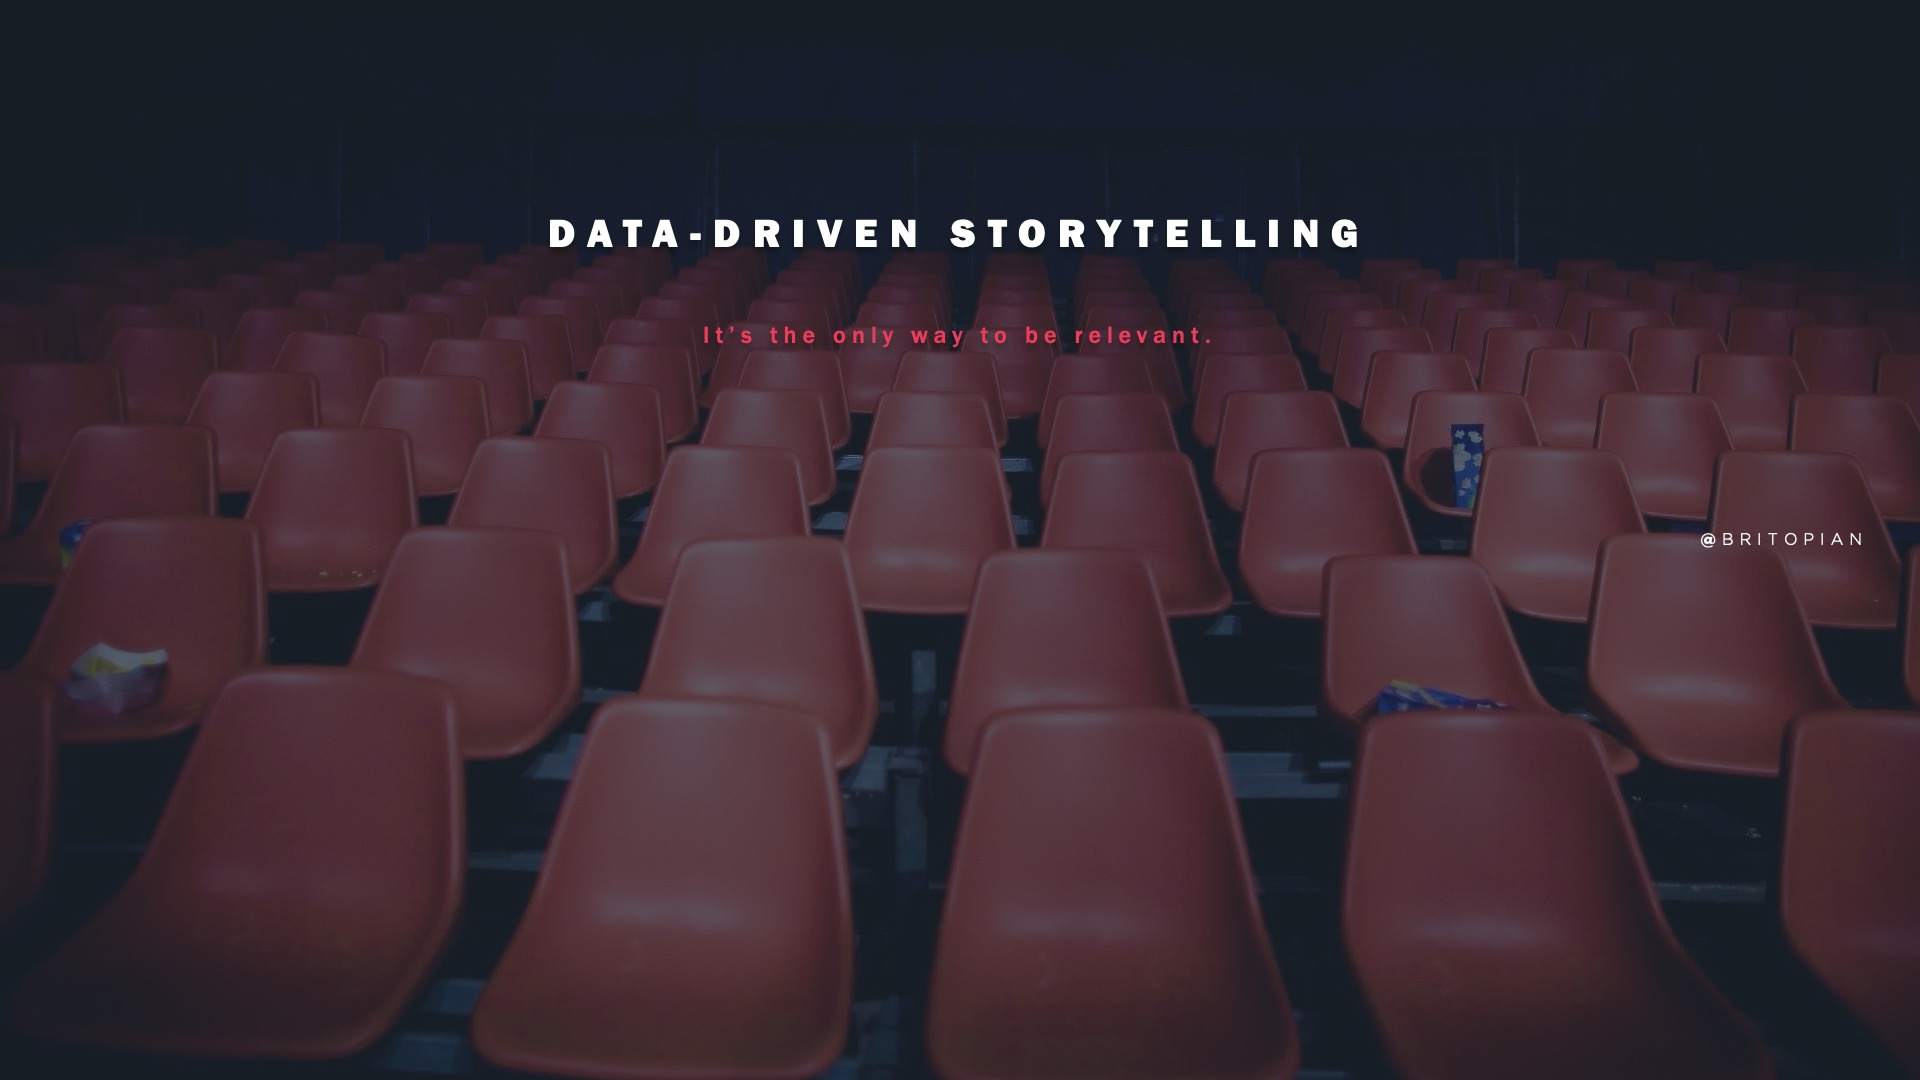 What is Data Driven Storytelling & How Does it Define Brand Relevance?